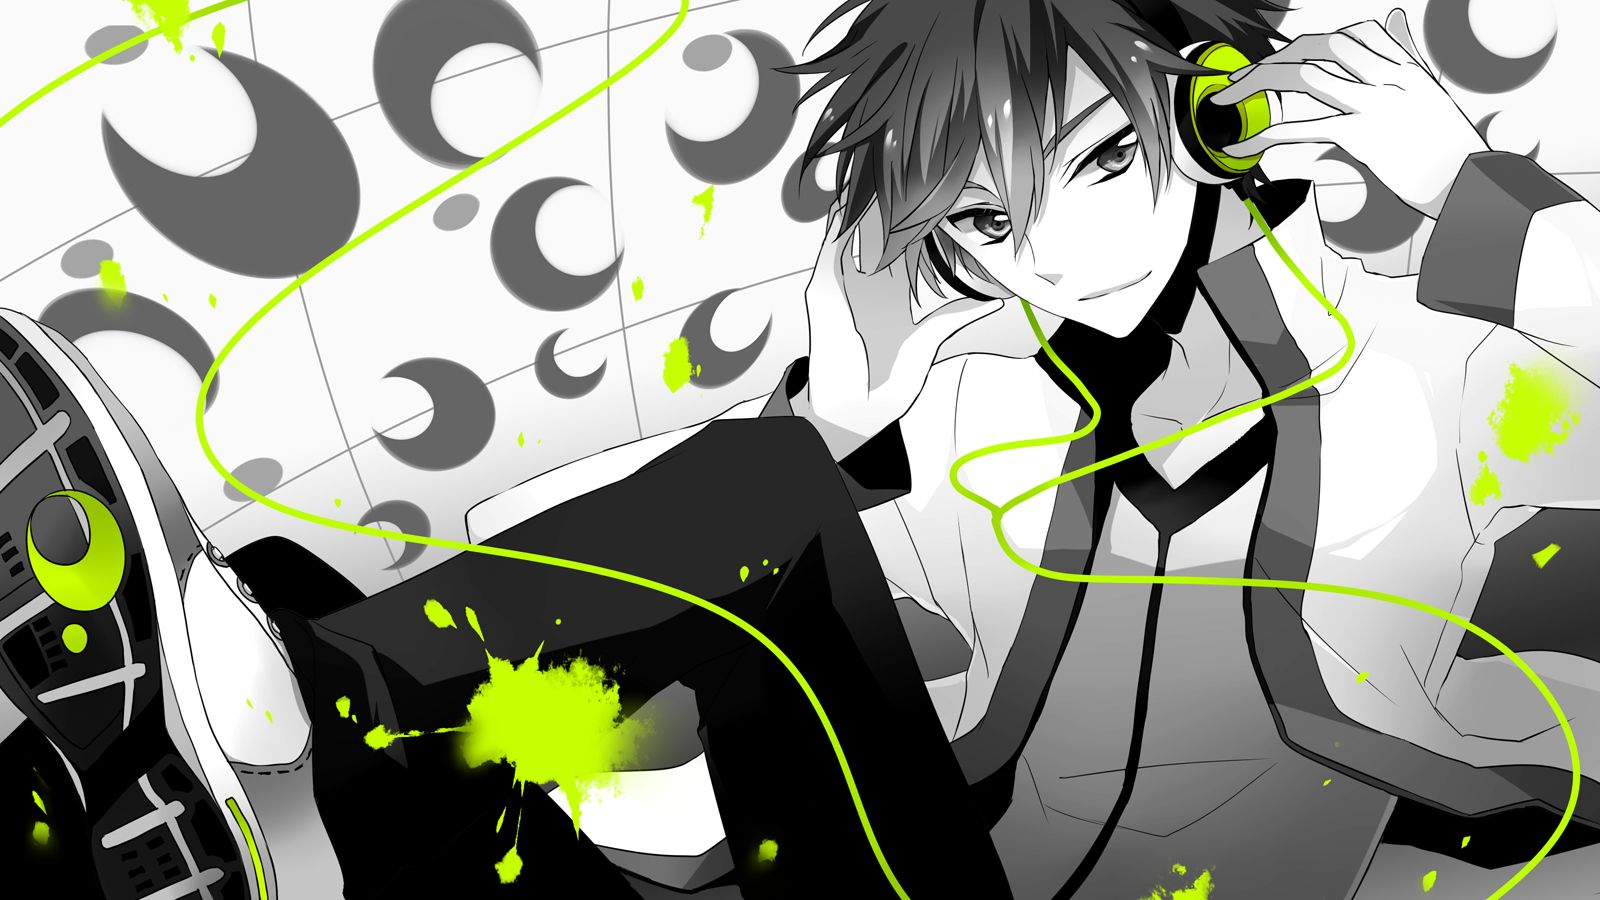 Anime guy headphones wallpaper hd widescreen 11 hd - Anime guy wallpaper ...